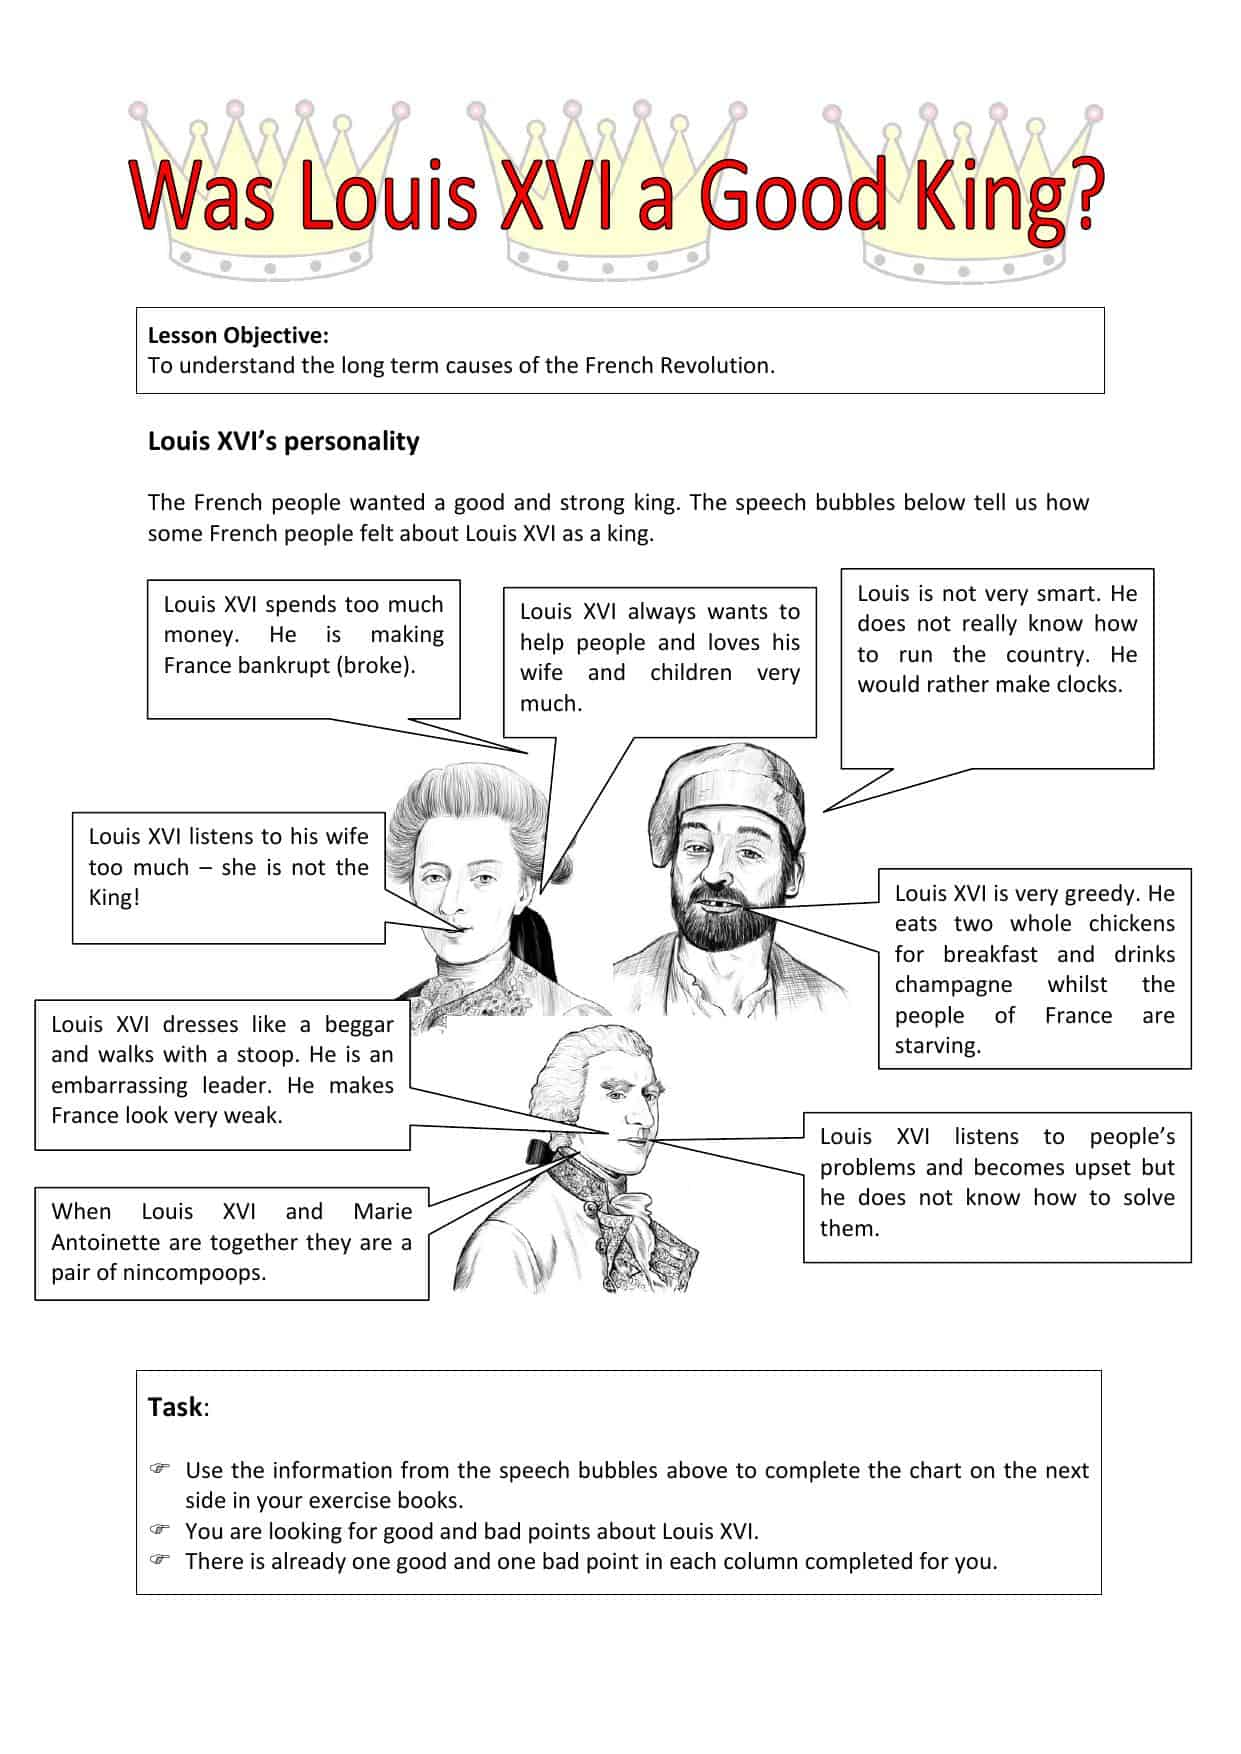 Did Louis Xvi Have The Qualities Of A Good King Worksheet